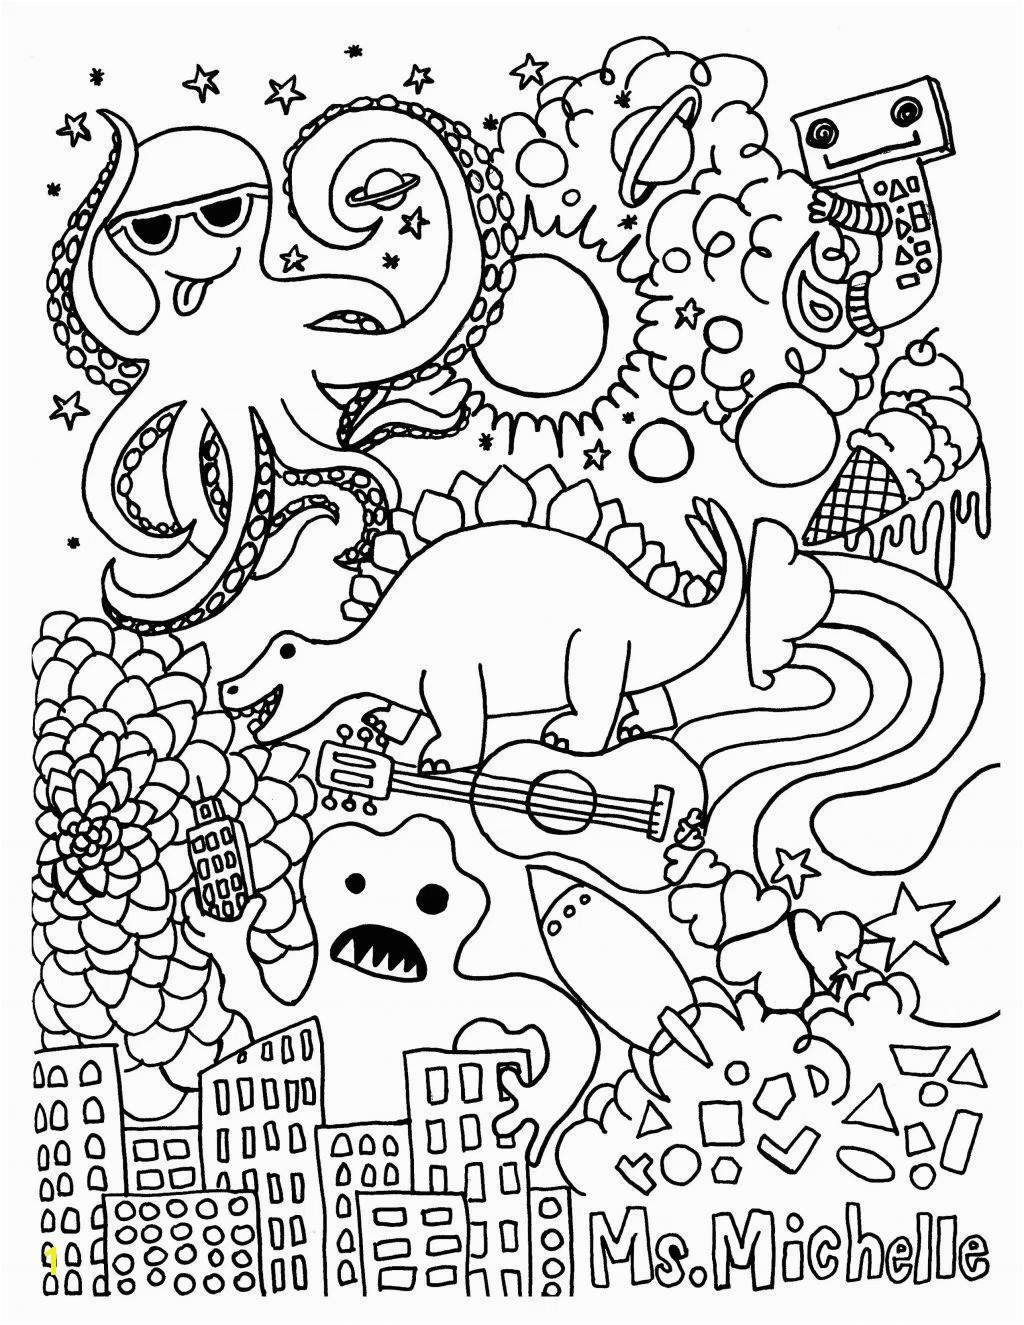 Impressive Halloween Vocabulary Coloring Pages Adult Srpski Numbers Vocabulary Alphabet Worksheets St Th Grade In Music Coloring Pages For Kindergarten DAK